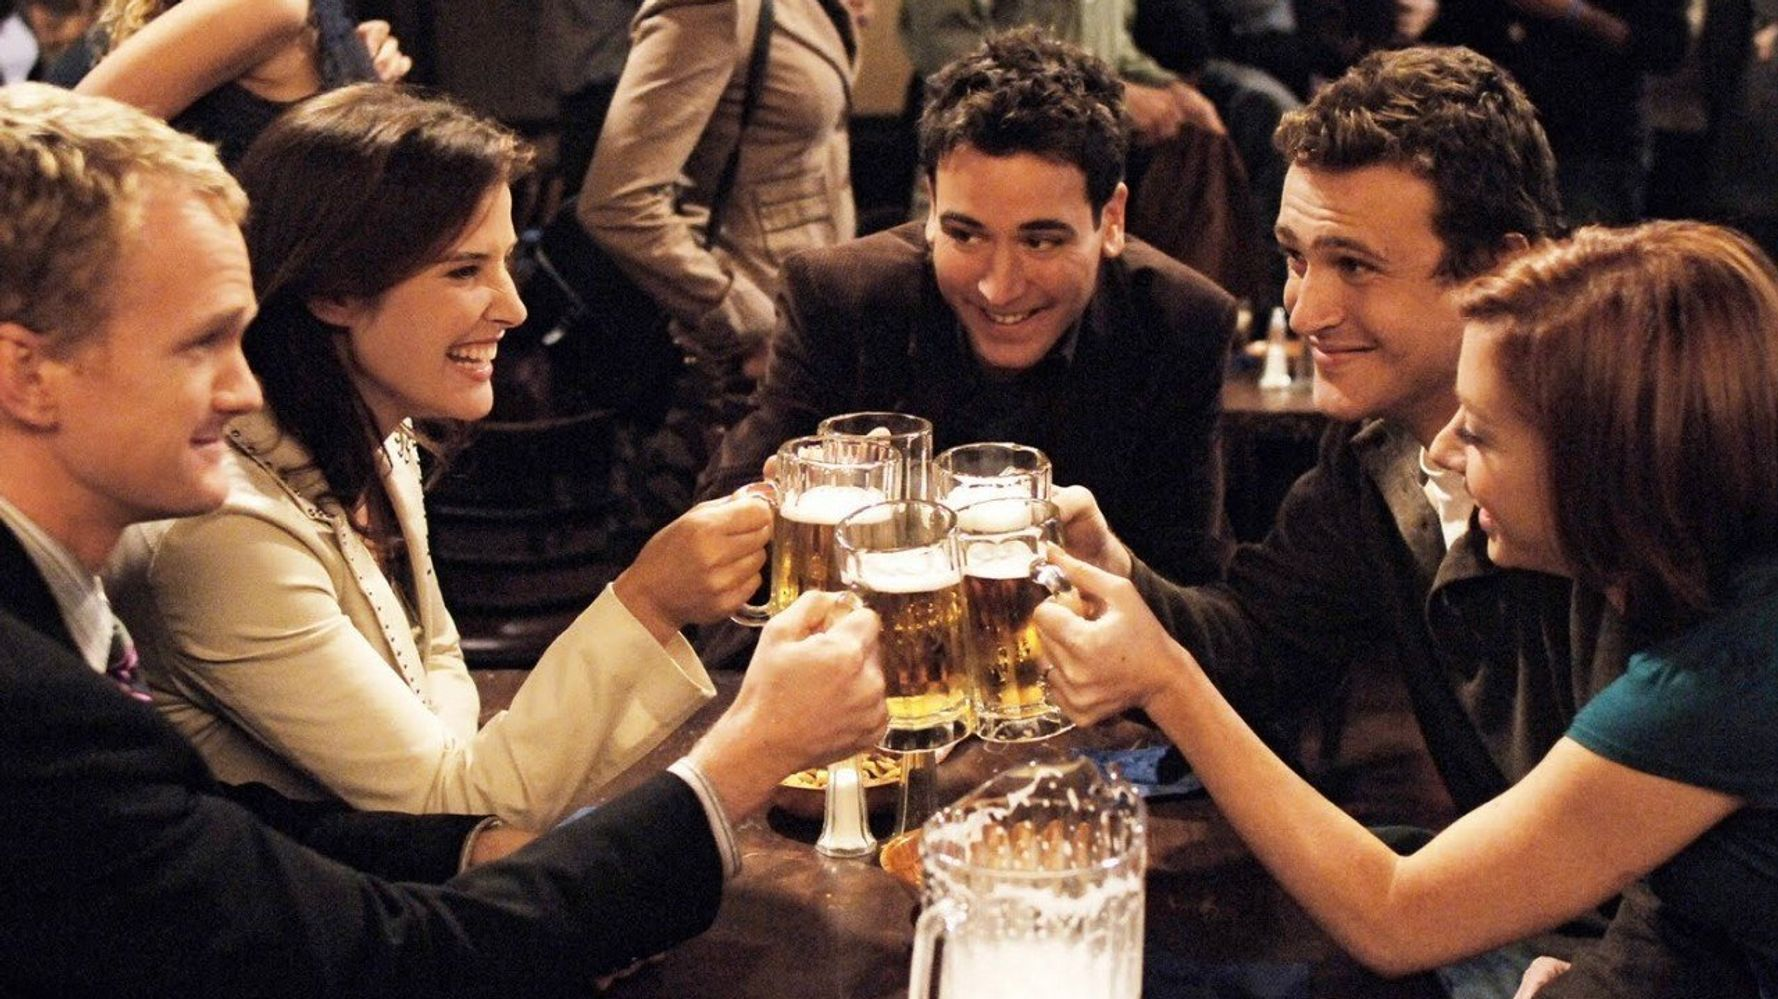 There's One Big Thing You Missed On 'How I Met Your Mother' | HuffPost